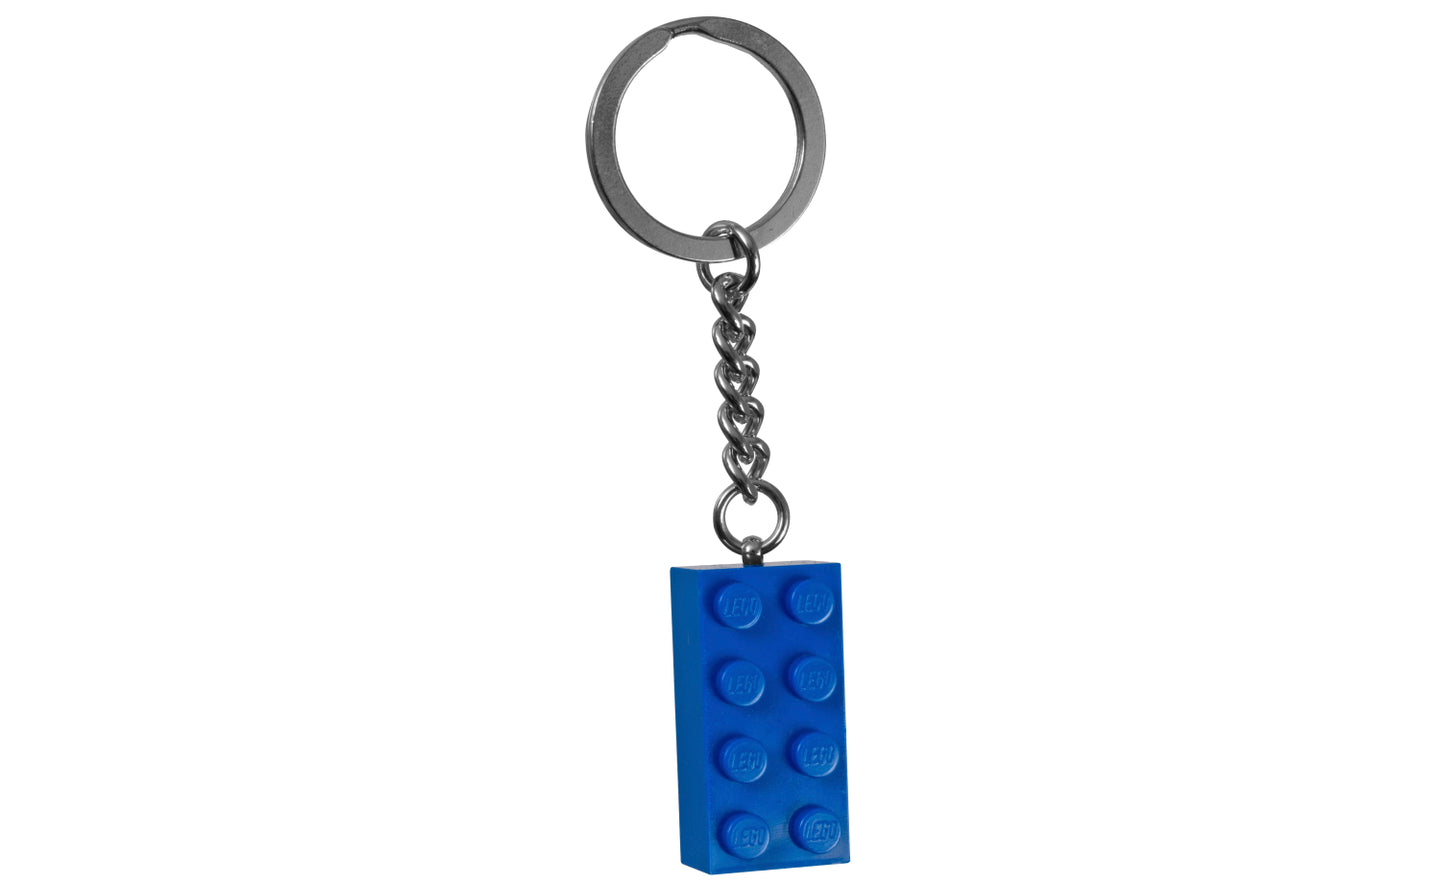 850152 | LEGO® Iconic Key Chain 2x4 Stud Blue